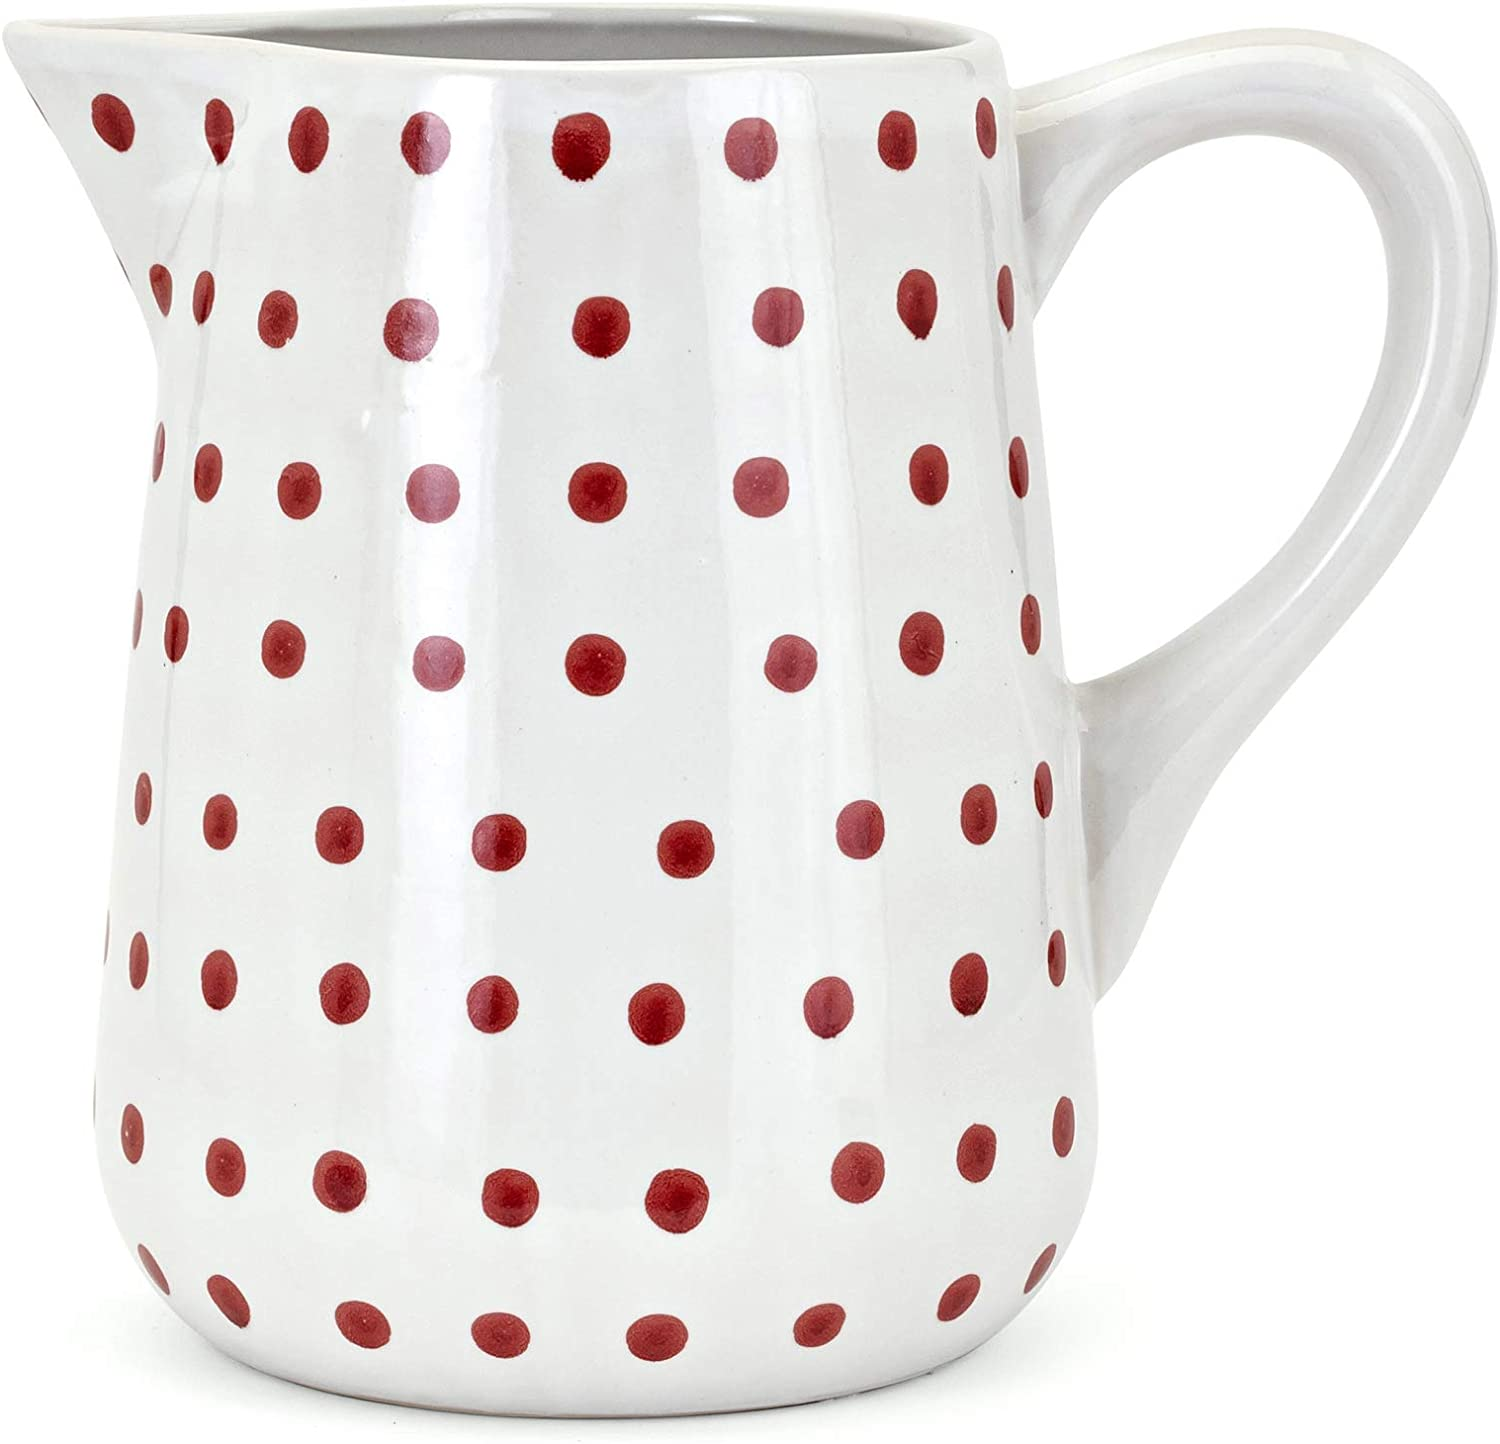 Trisha Yearwood Home Collection Berry Patch Hand-Painted Pitcher White